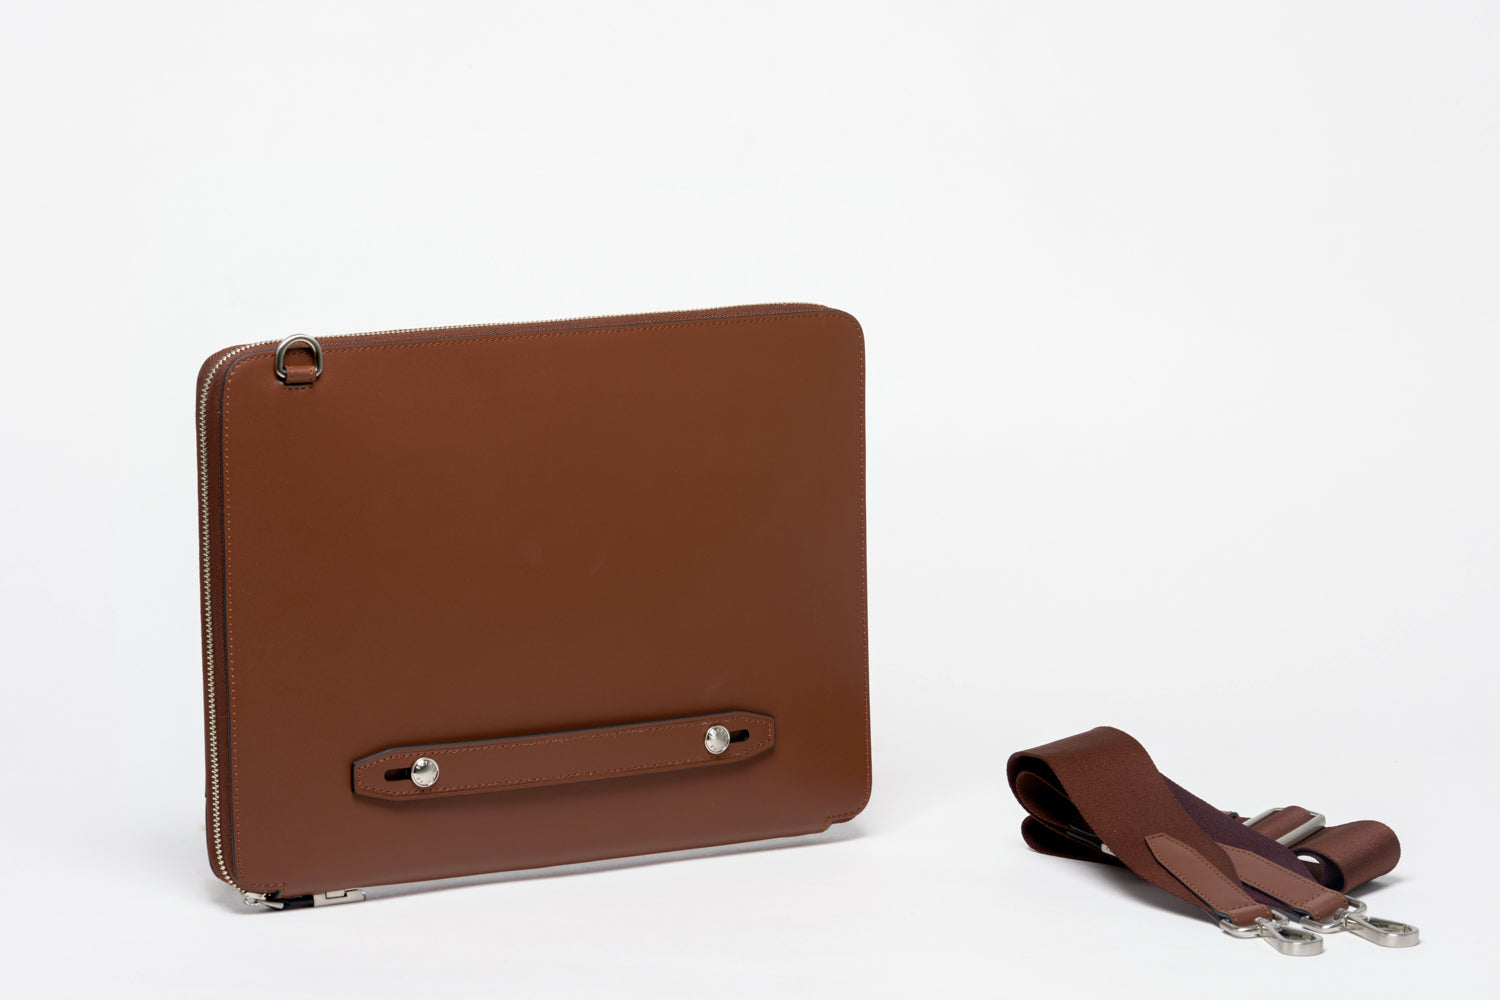 Bond VT Everyday Padfolio | Leather Tech Organizer